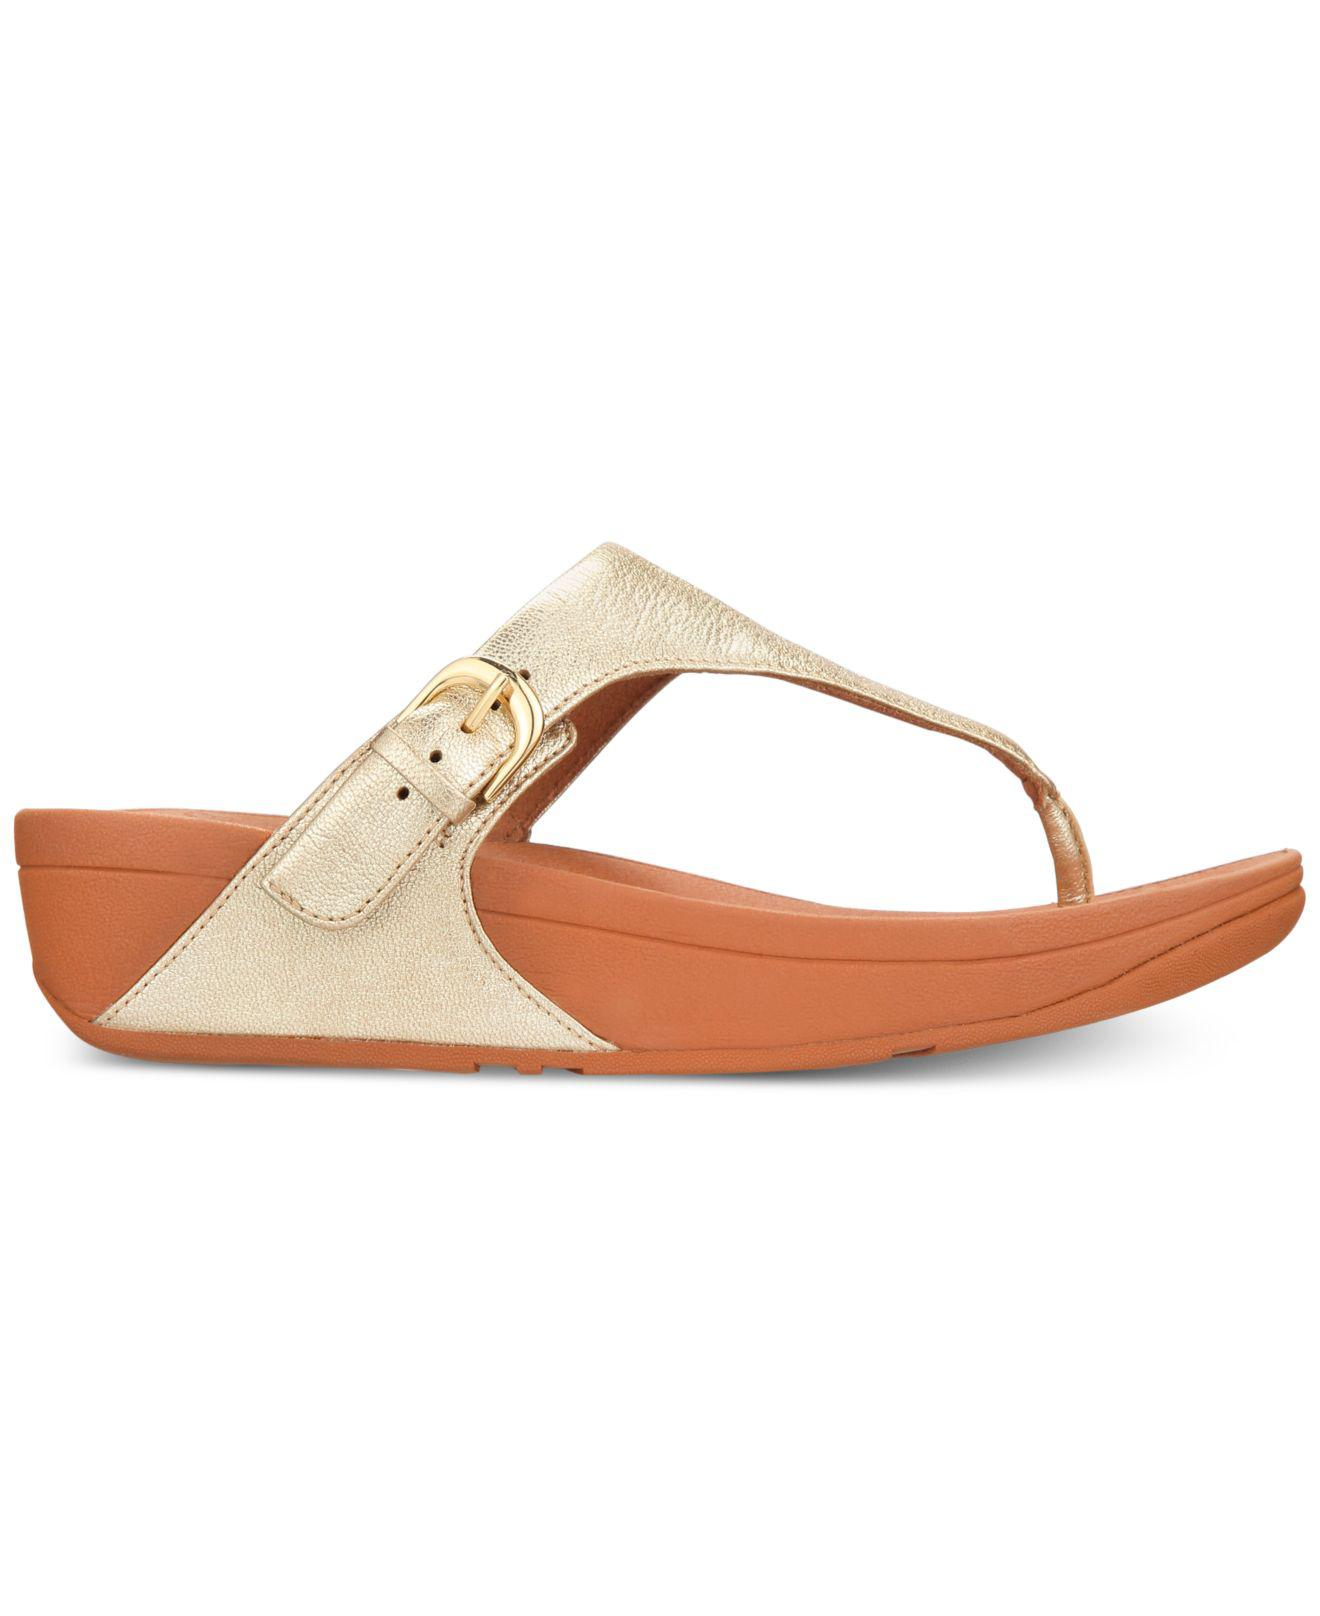 816698fa550 Lyst - Fitflop Skinny Toe-thong Wedge Sandals